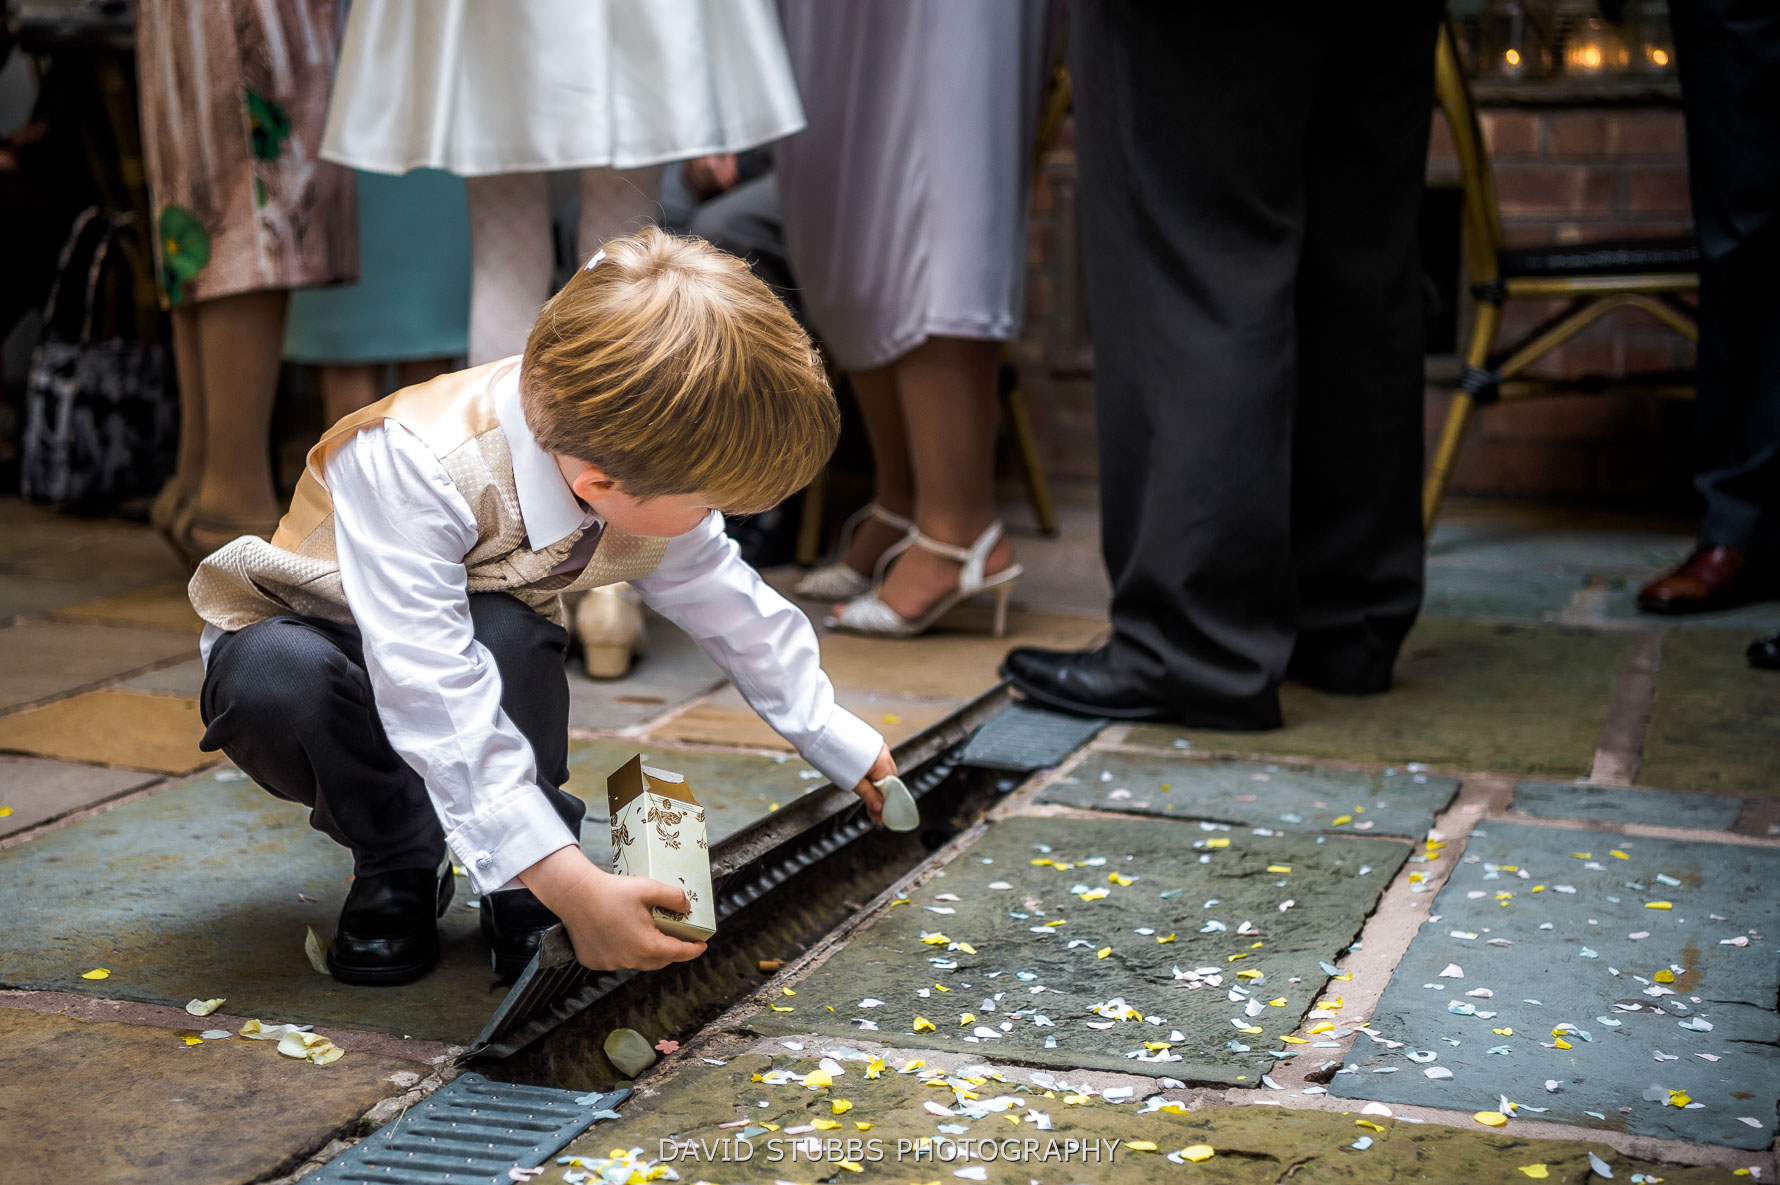 kid picking up confetti